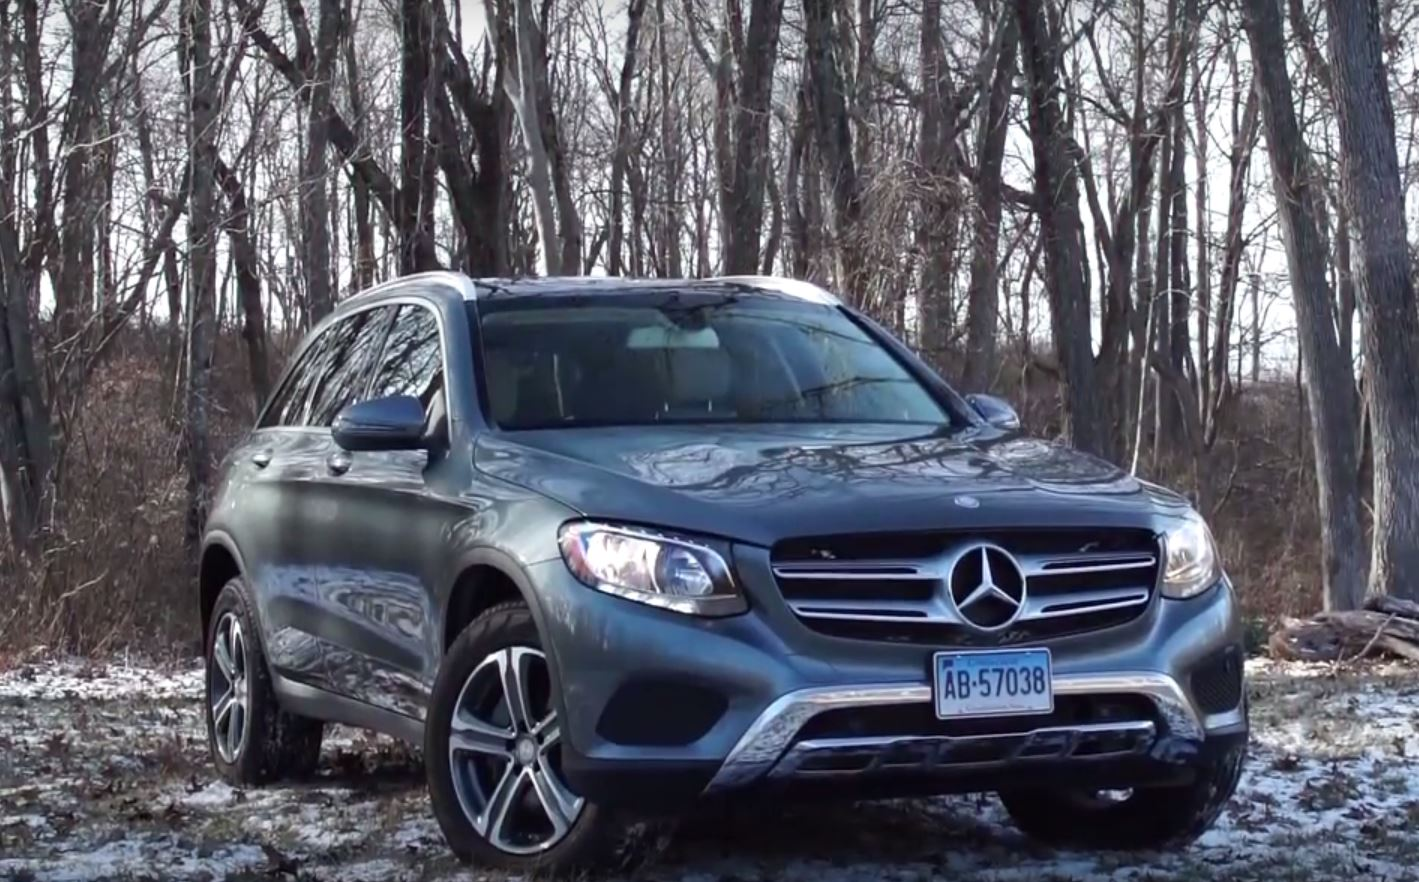 2016 Mercedes GLC Has a Great 9-Speed and 2L Turbo, Says